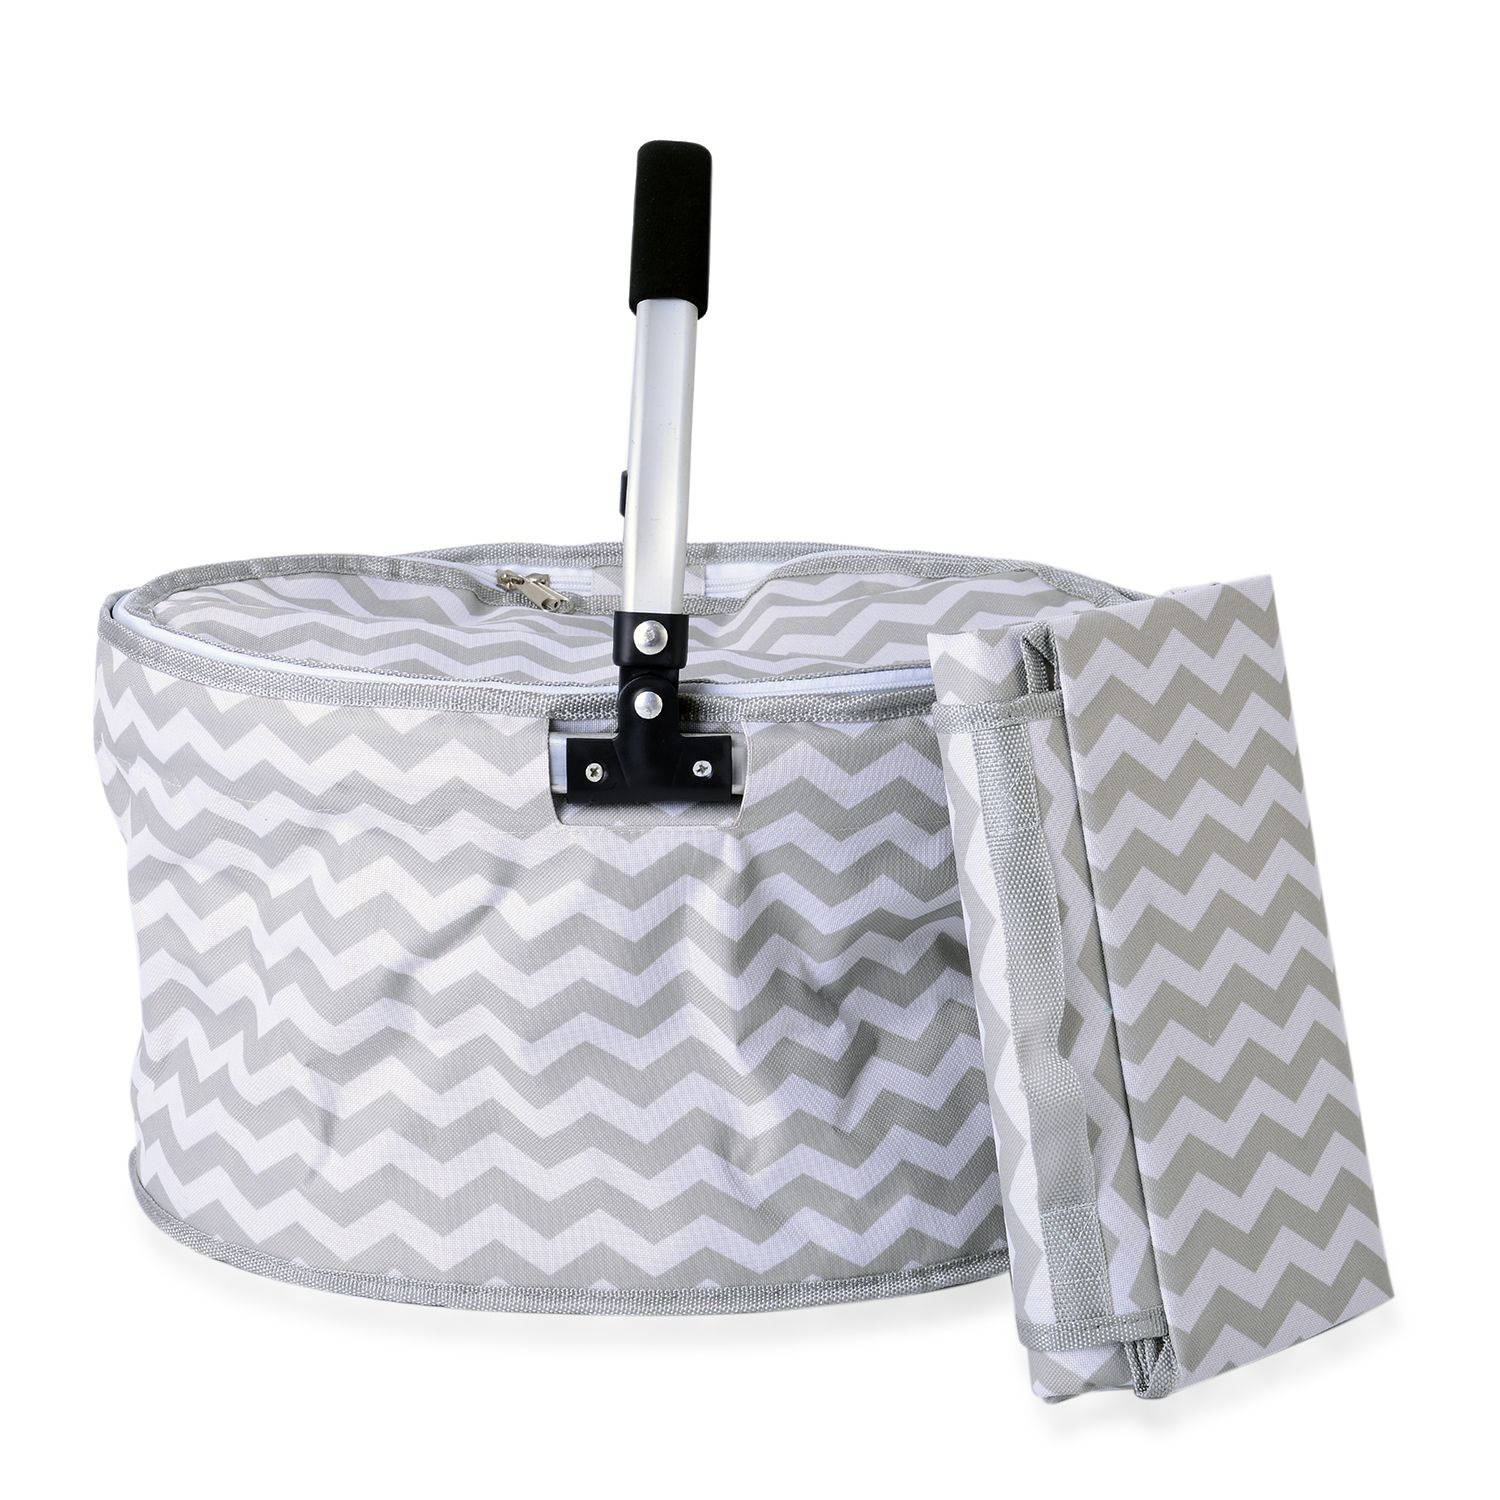 "White and Gray Polyester Printed Collapsible""sulation Picnic Basket Set of 2"